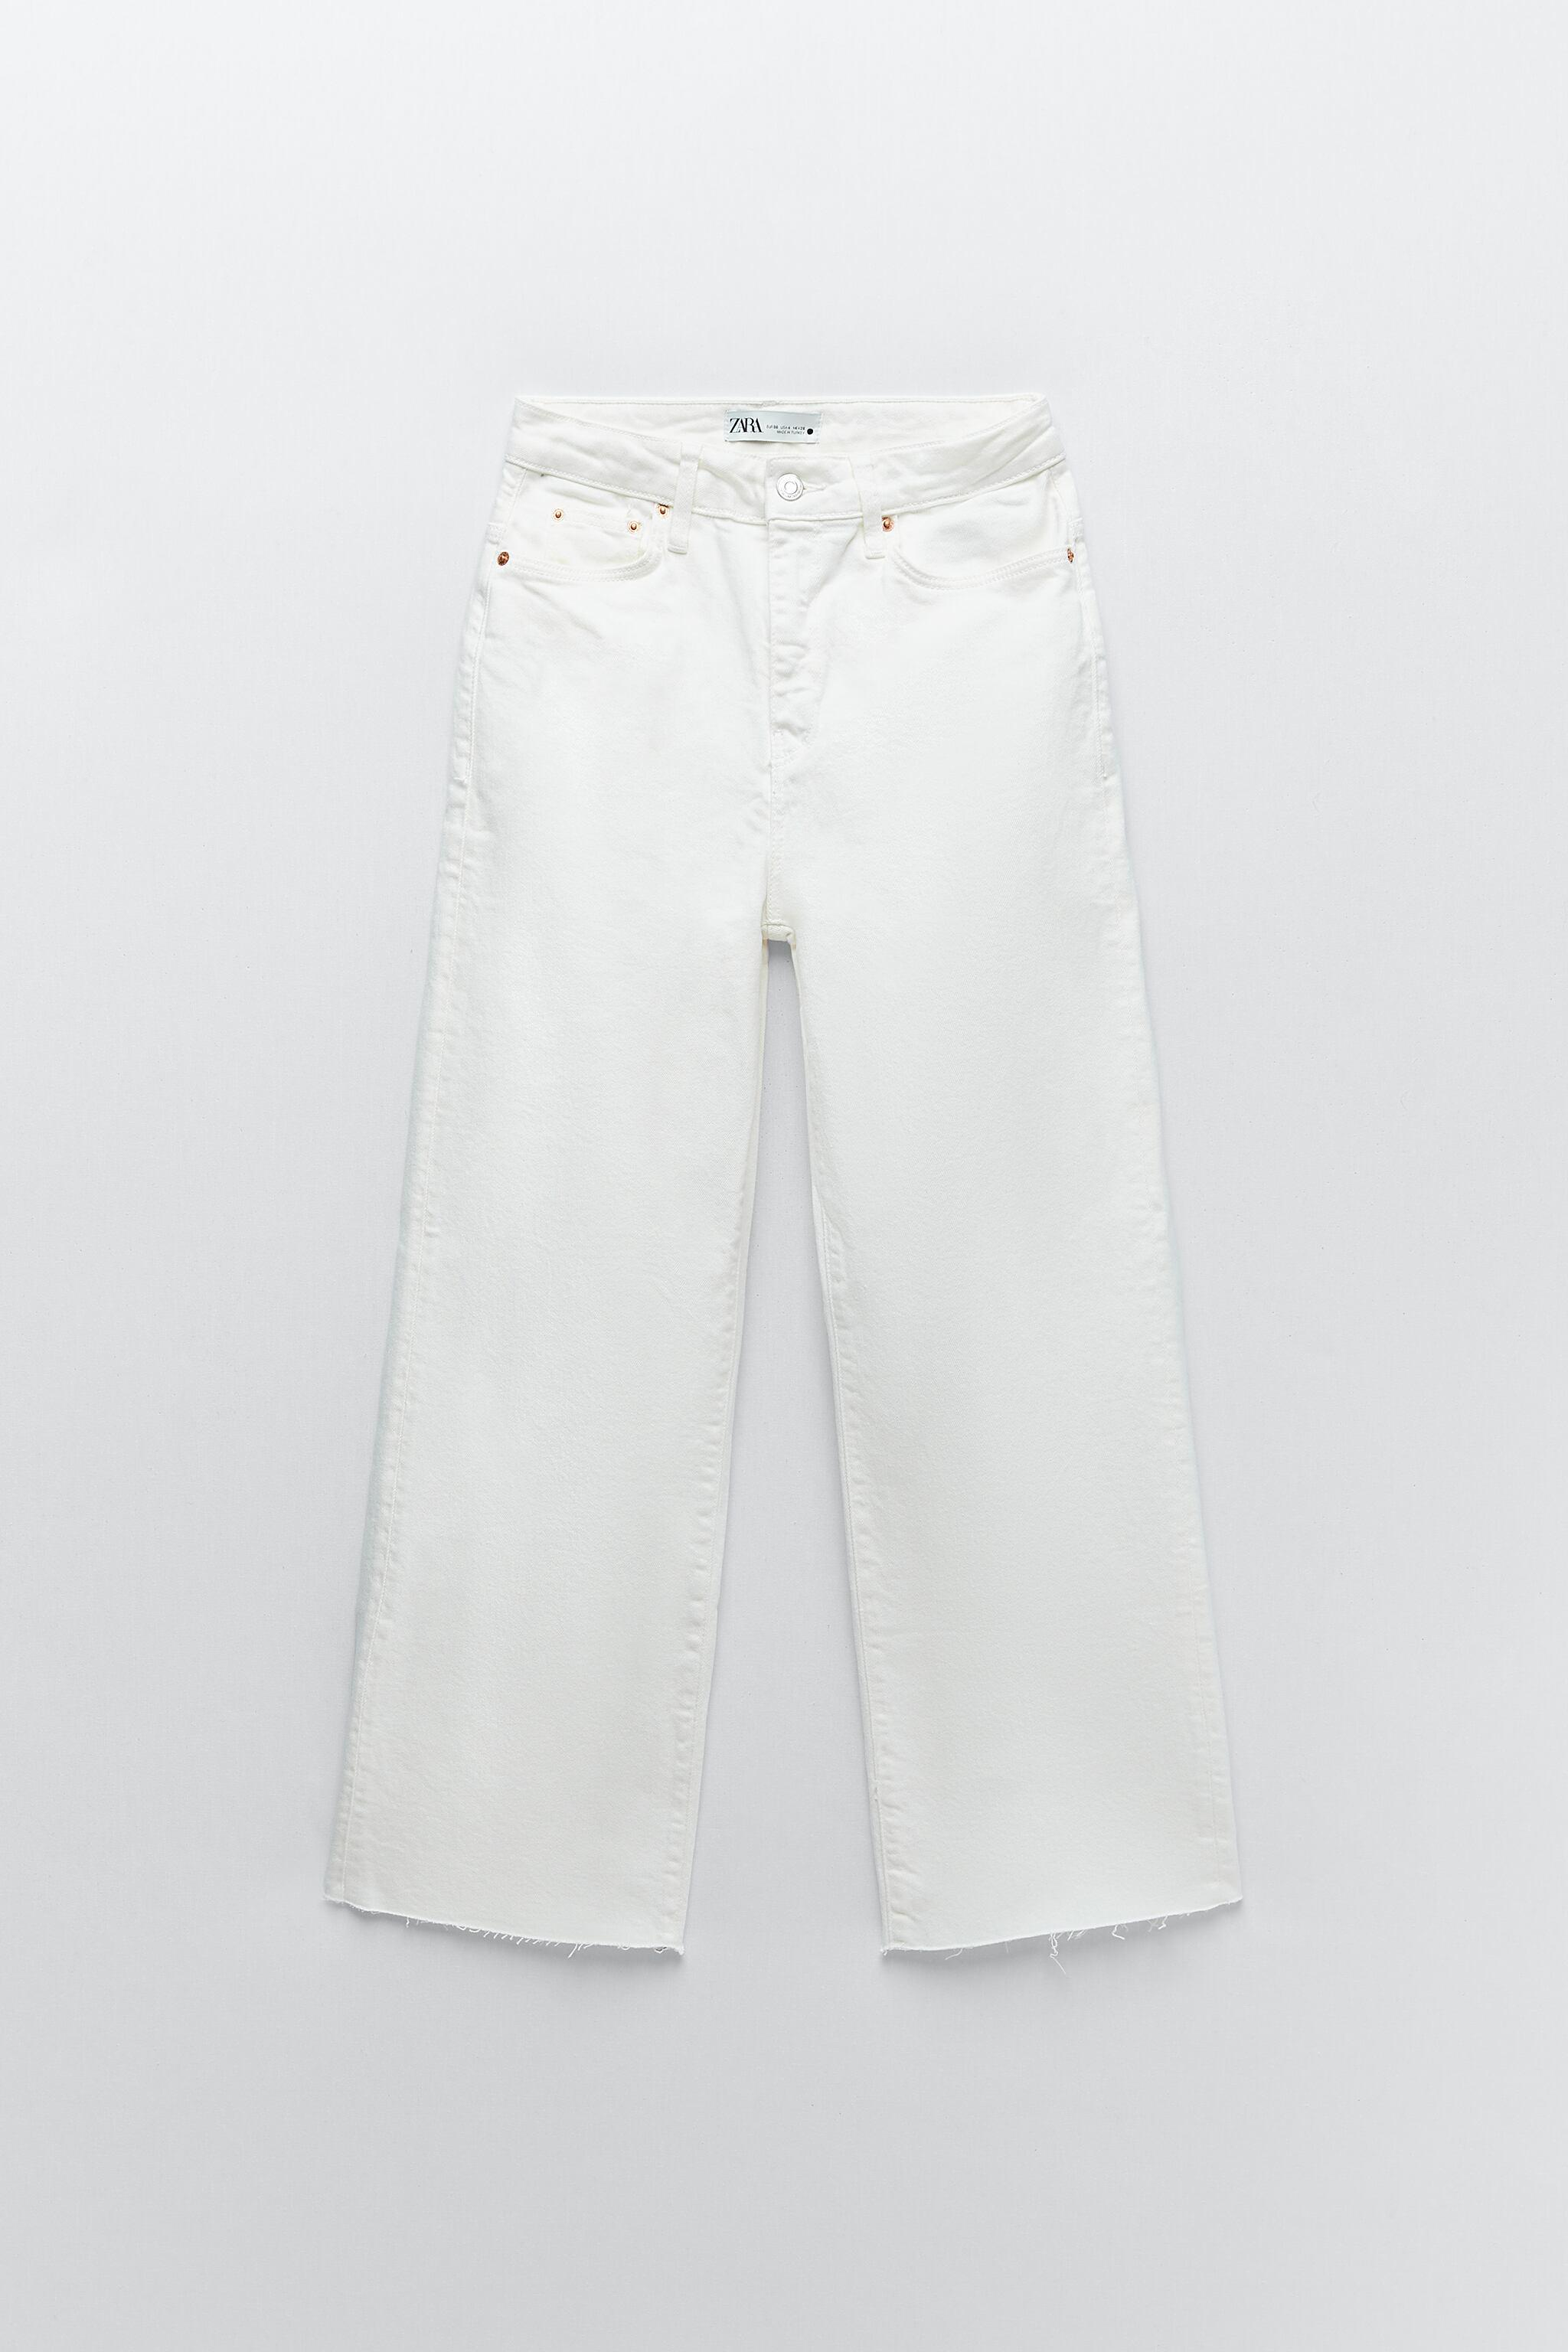 ZW THE HIGH WAIST CULOTTES JEANS 5